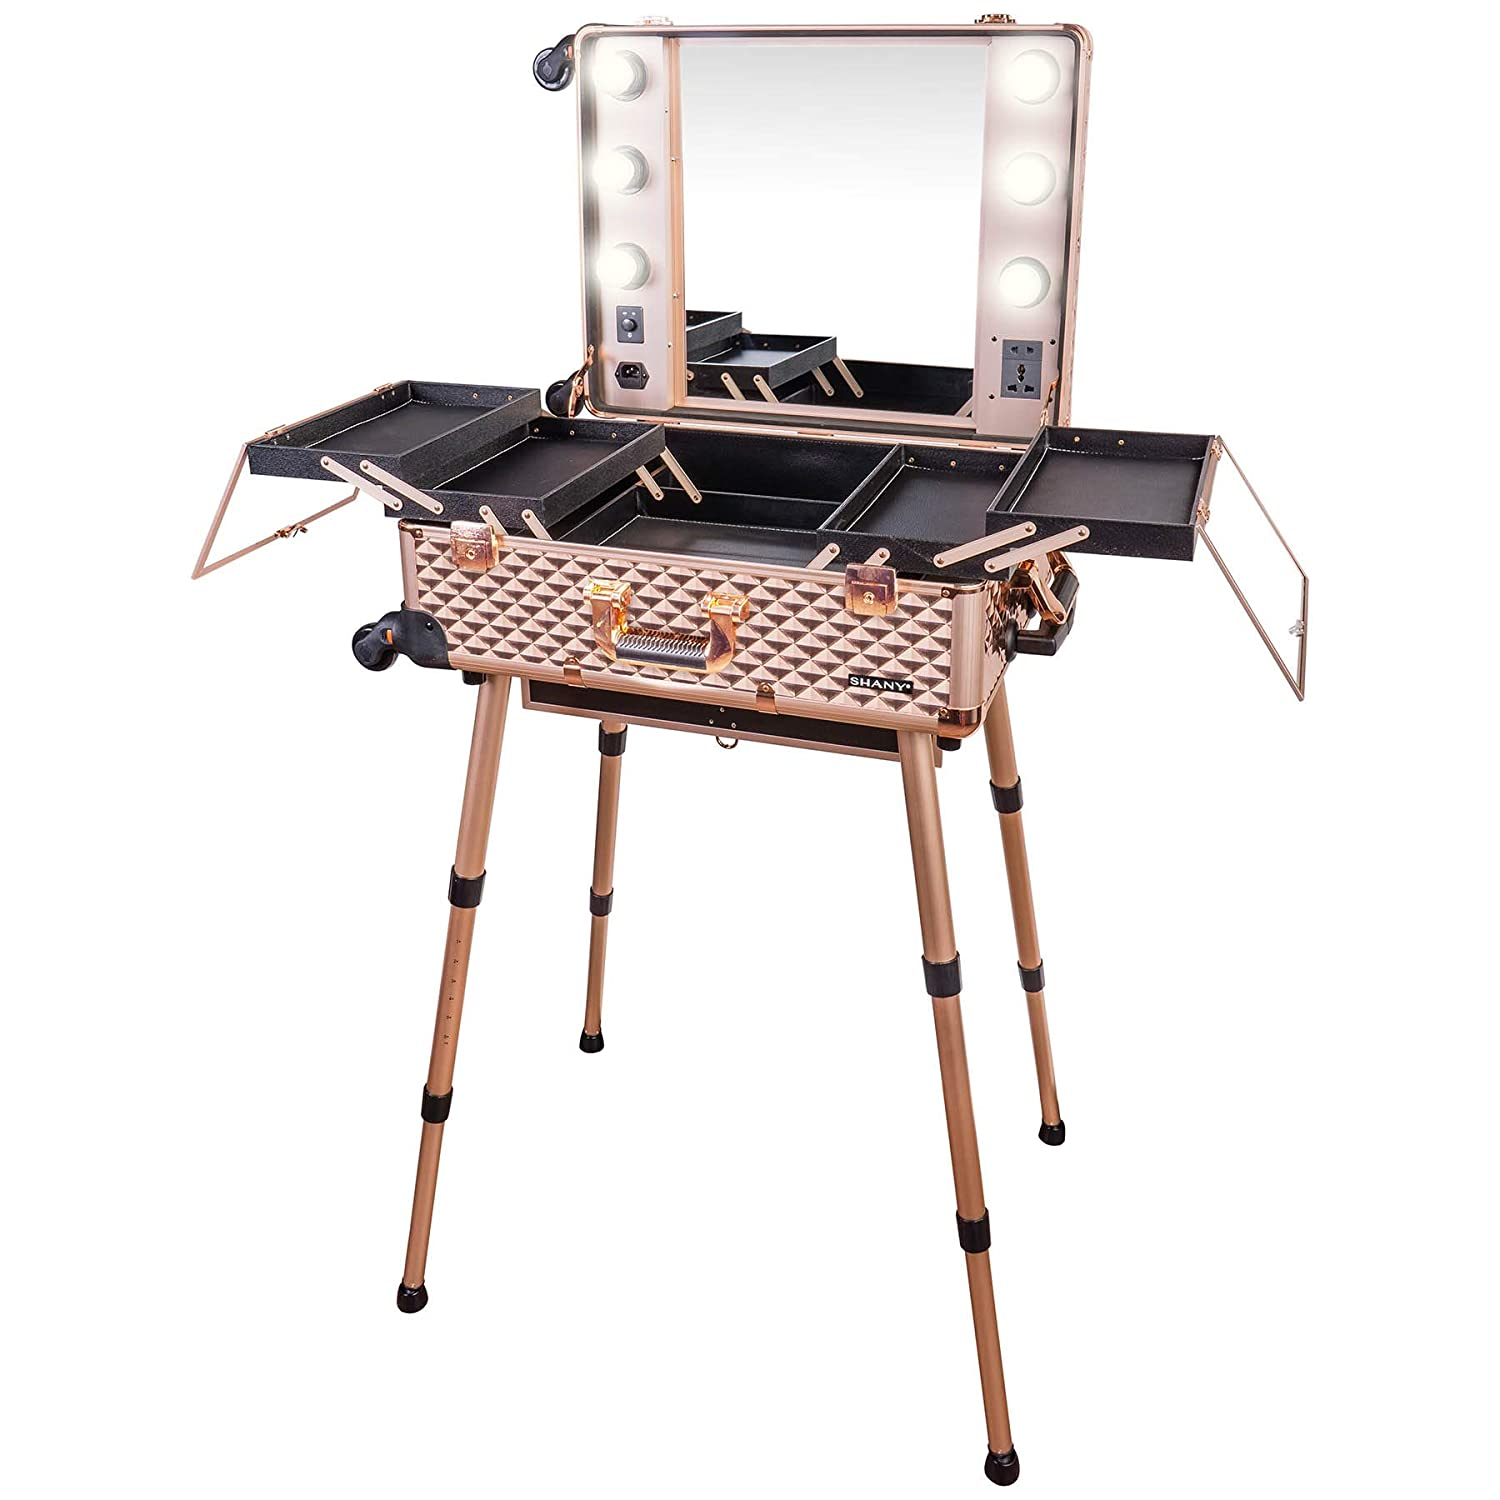 SHANY Studio ToGo Wheeled Trolley Makeup Case & Organizer with Light - ROSE GOLD